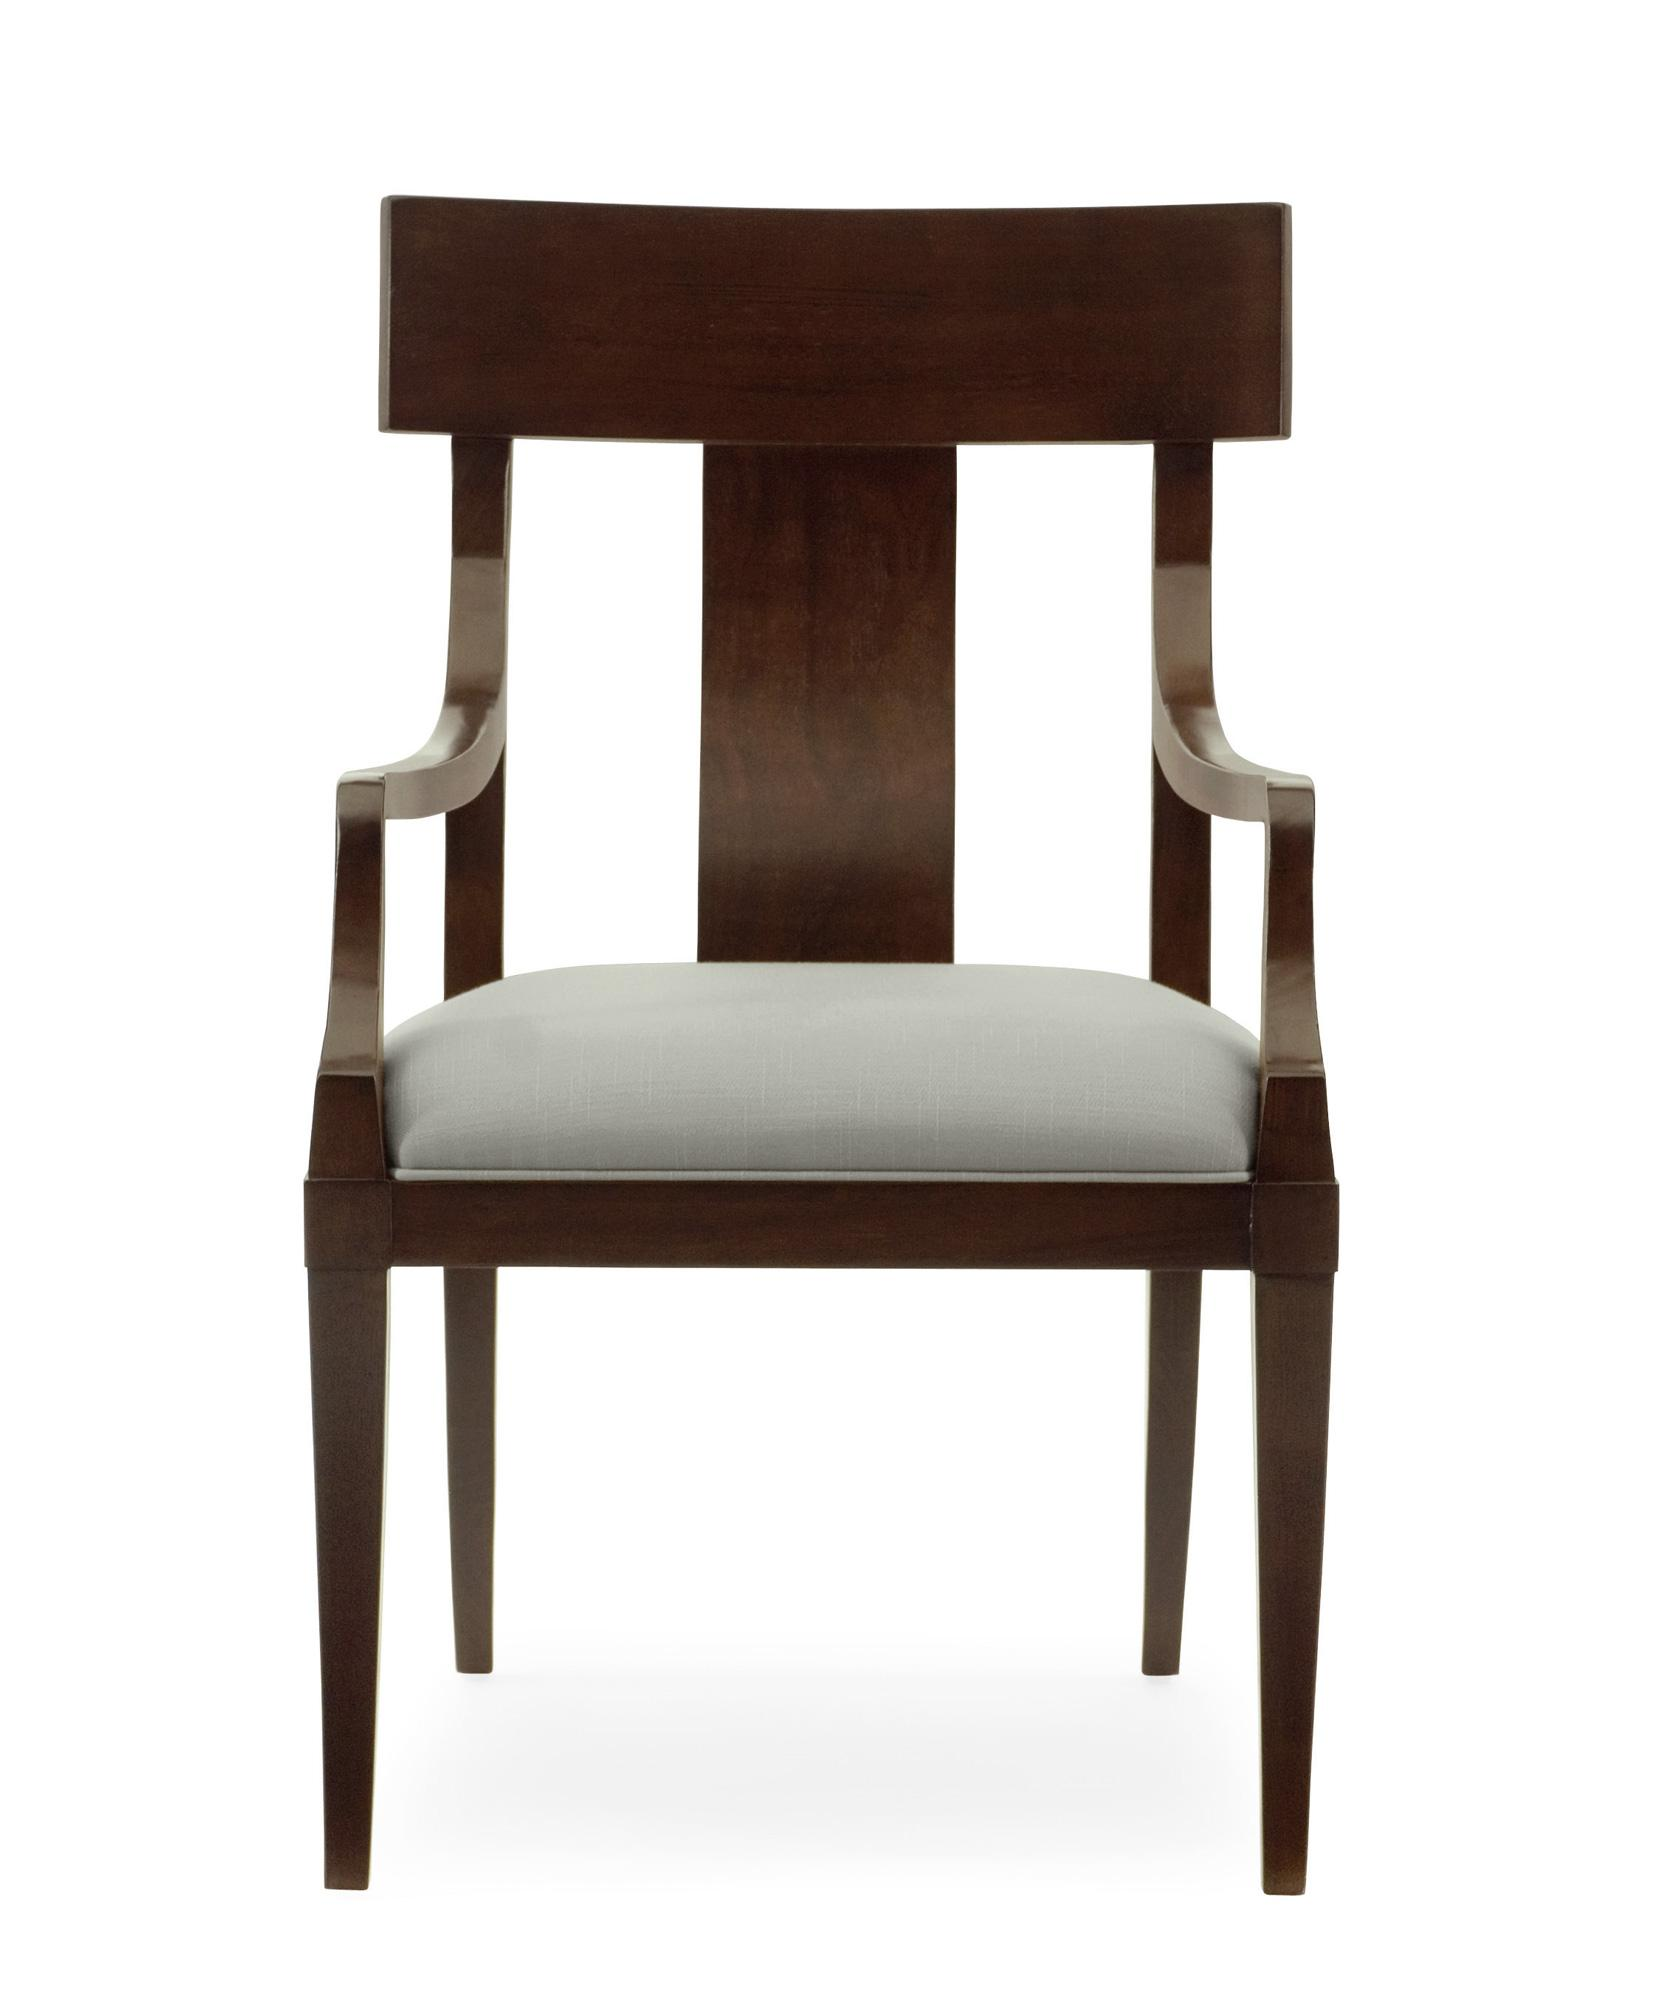 Bernhardt Haven 346 502 Arm Chair With Upholstered Seat